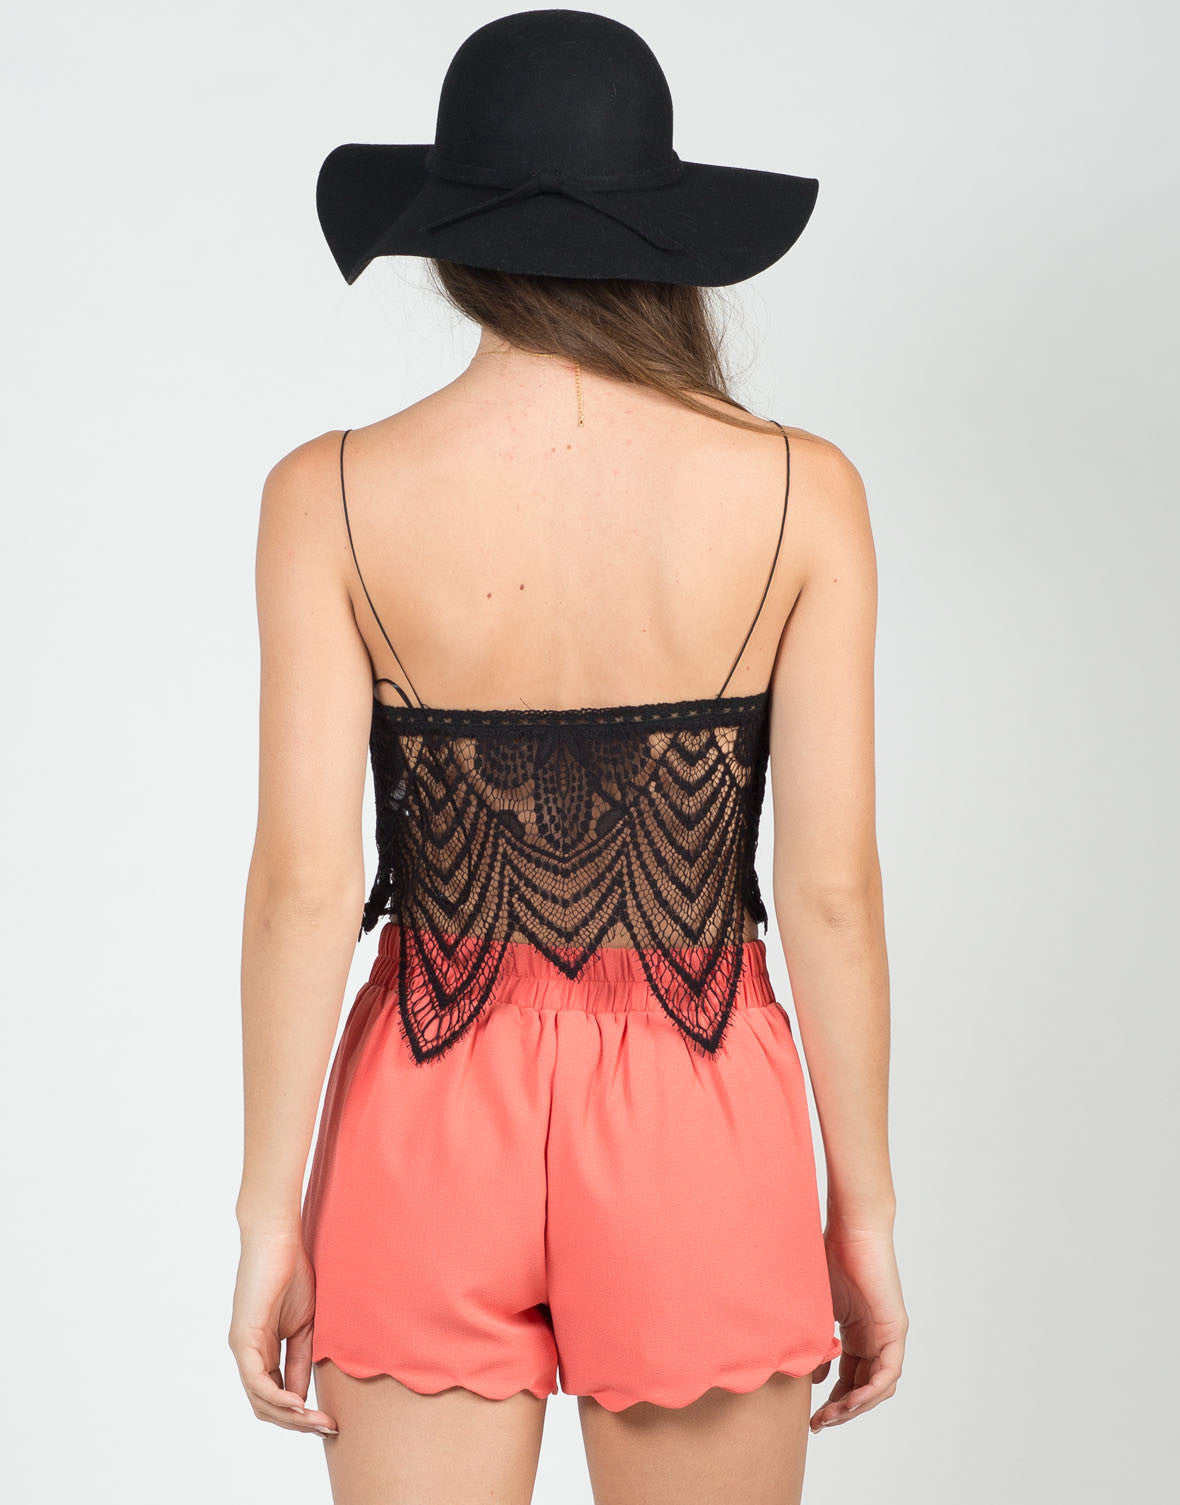 Back View of Lace Overlay Bralette